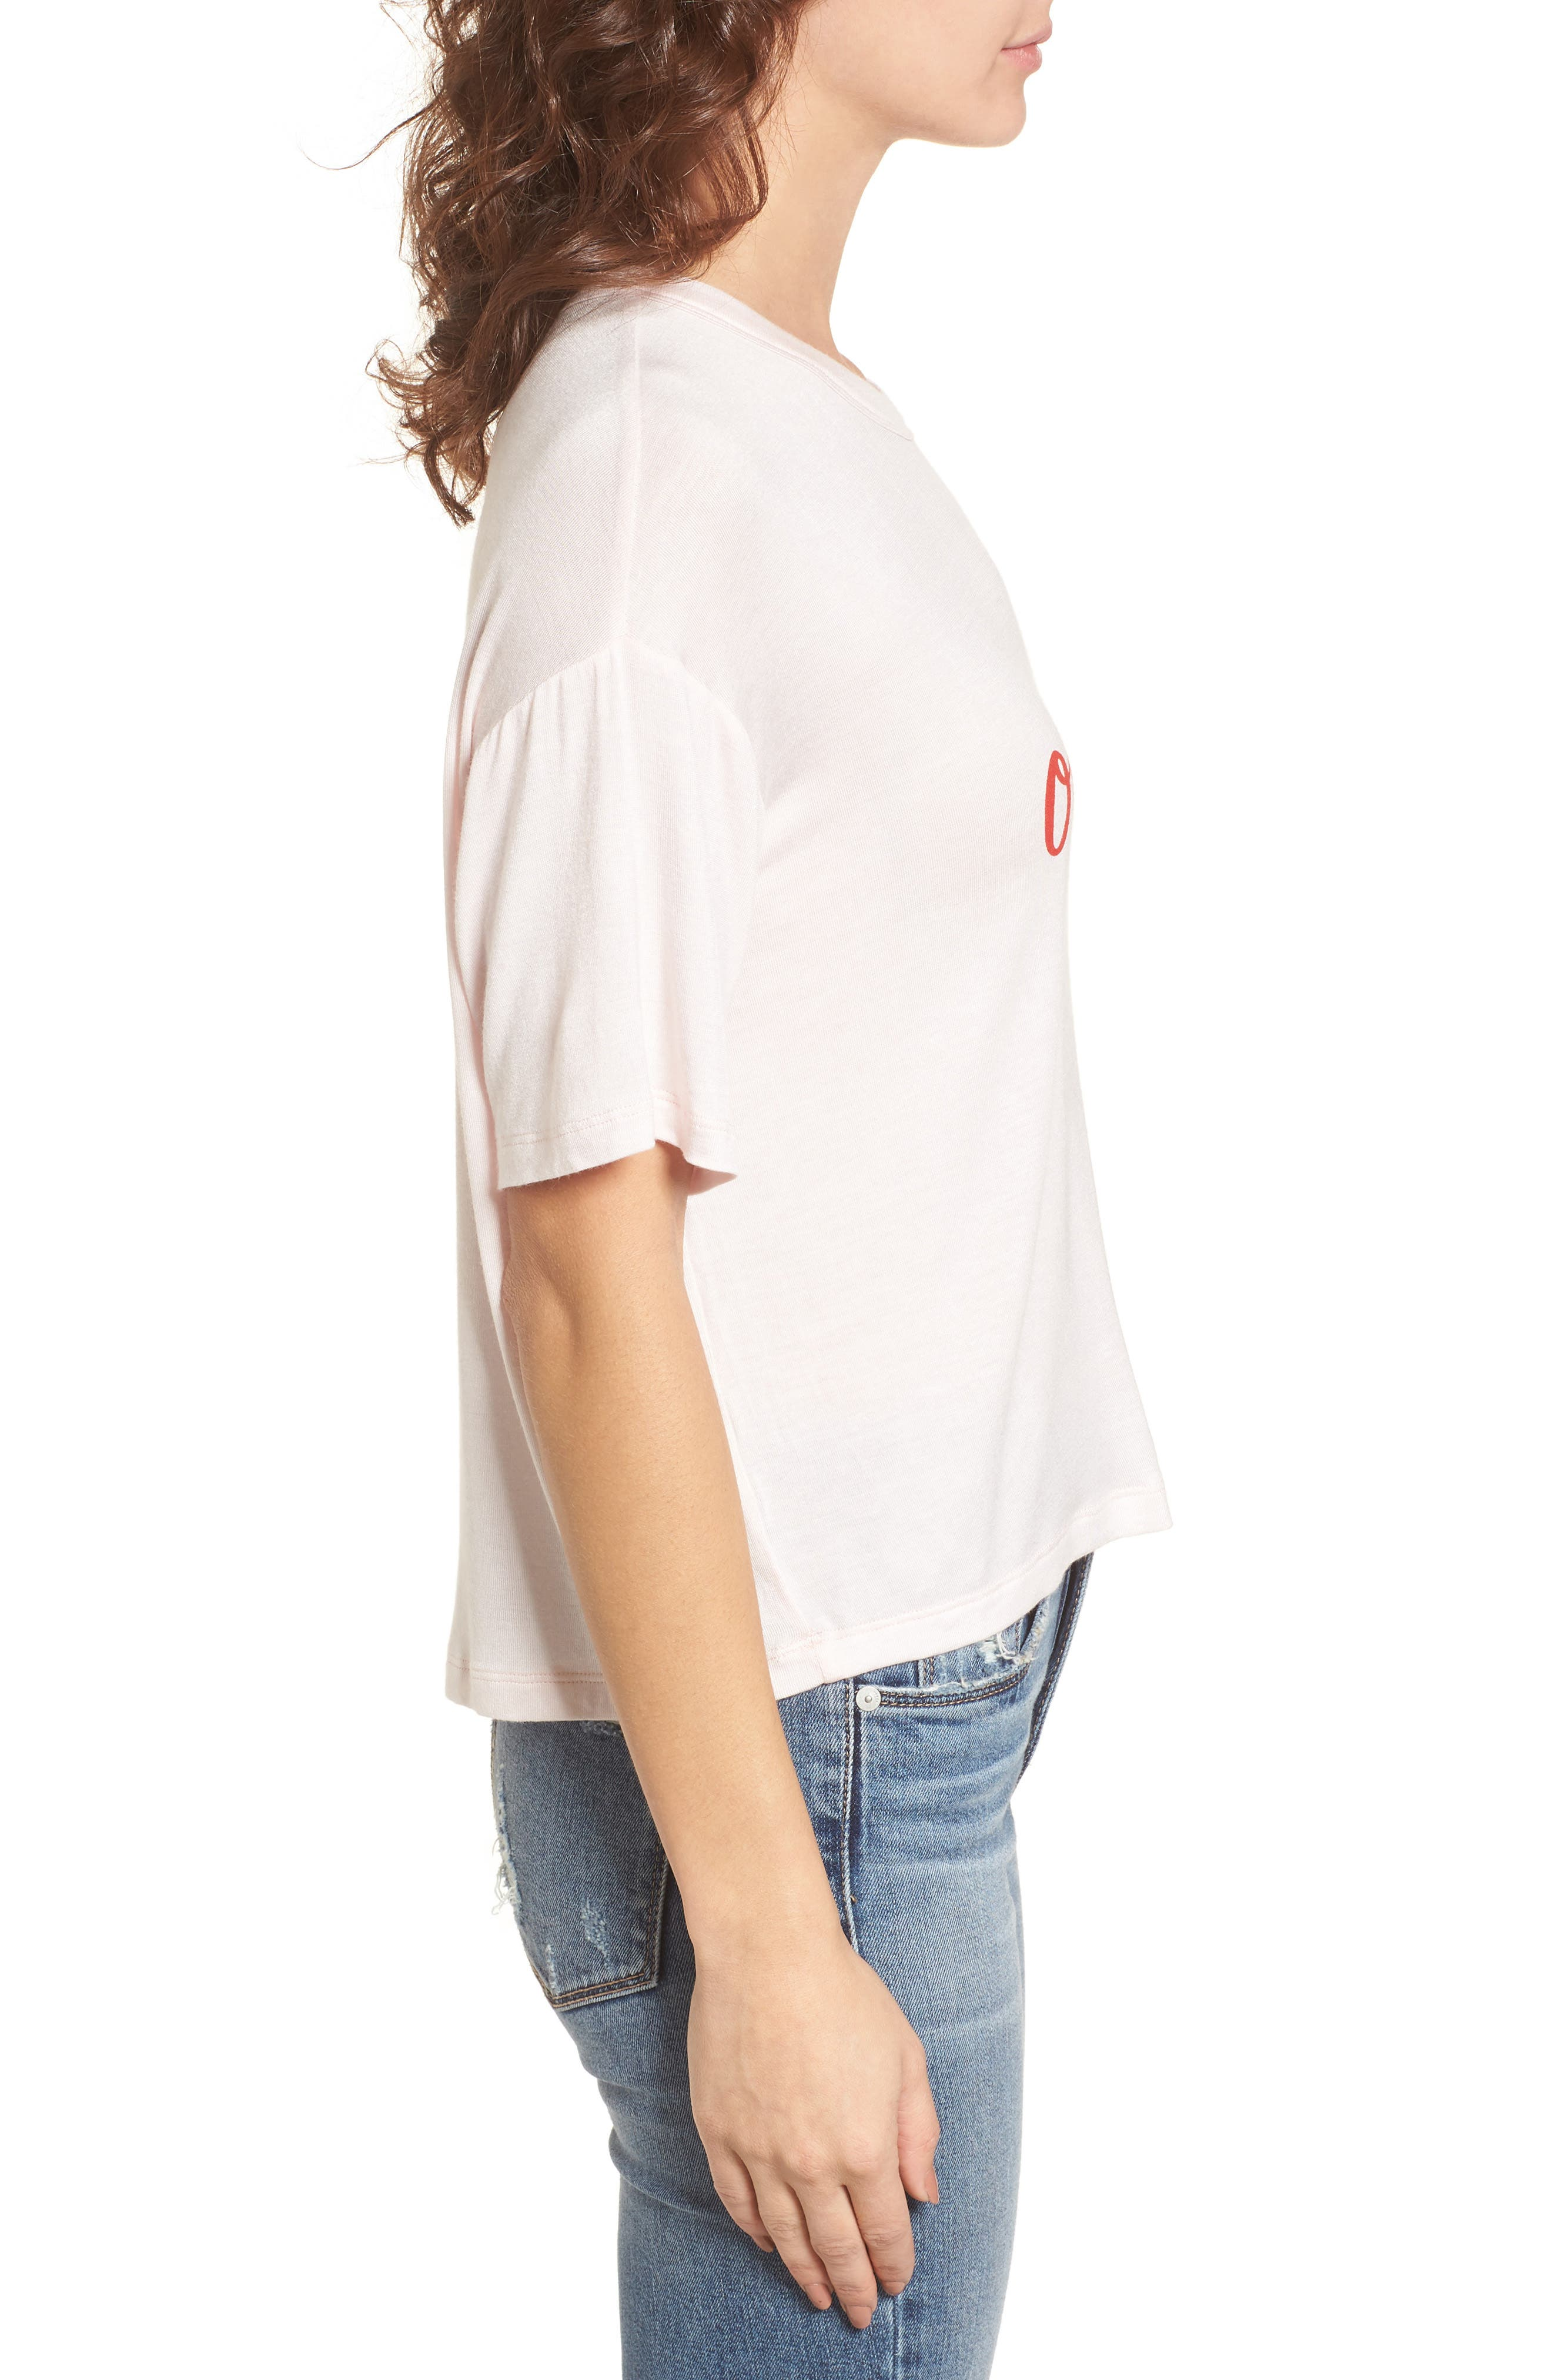 Oui Oui Graphic Tee,                             Alternate thumbnail 3, color,                             Light Pink